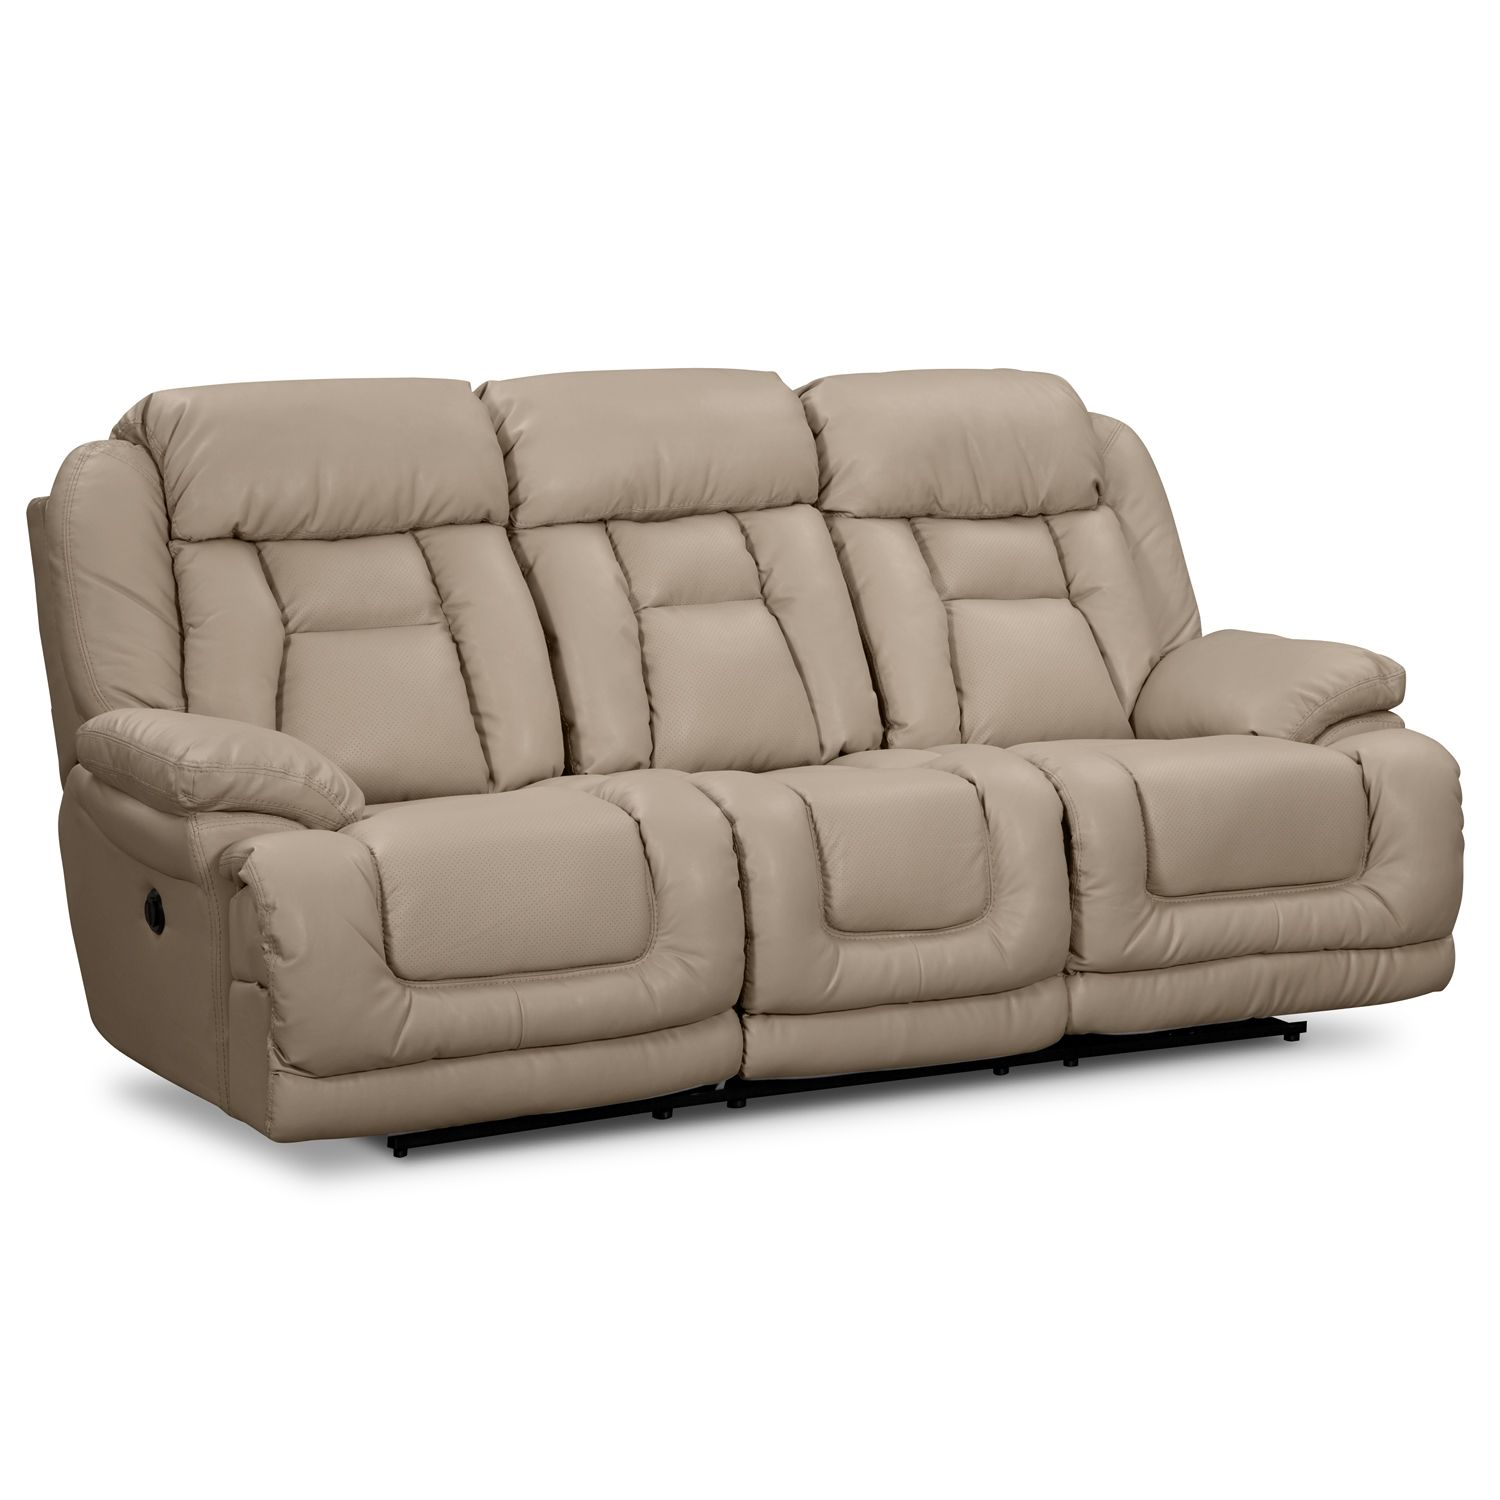 Avenger II Leather Dual Power Reclining Sofa - Value City Furniture  sc 1 st  Pinterest : dual power reclining sofa - islam-shia.org